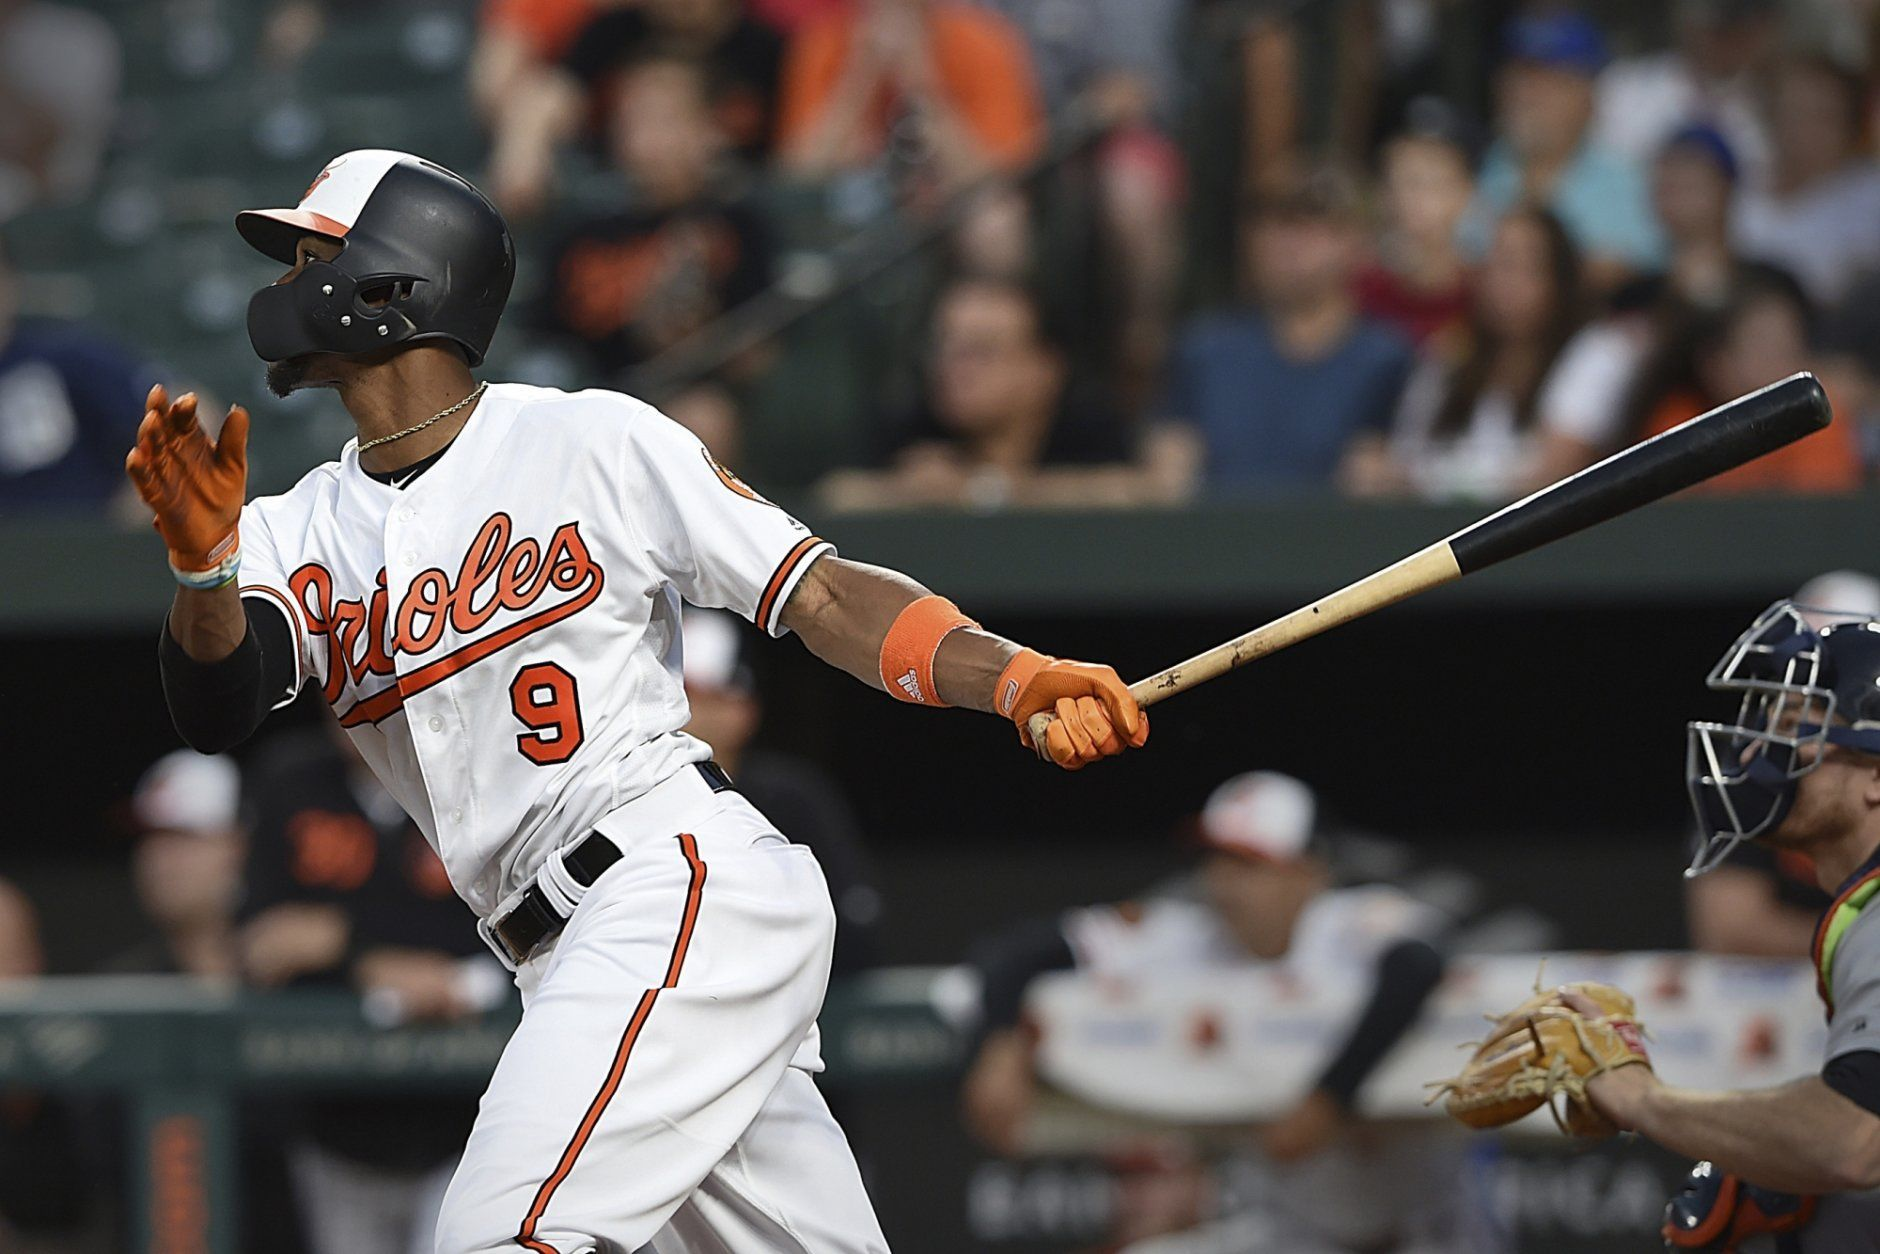 Baltimore Orioles' Keon Broxton watches his solo home run against the Detroit Tigers during the fourth inning of a baseball game Wednesday, May 29, 2019, in Baltimore. (AP Photo/Gail Burton)